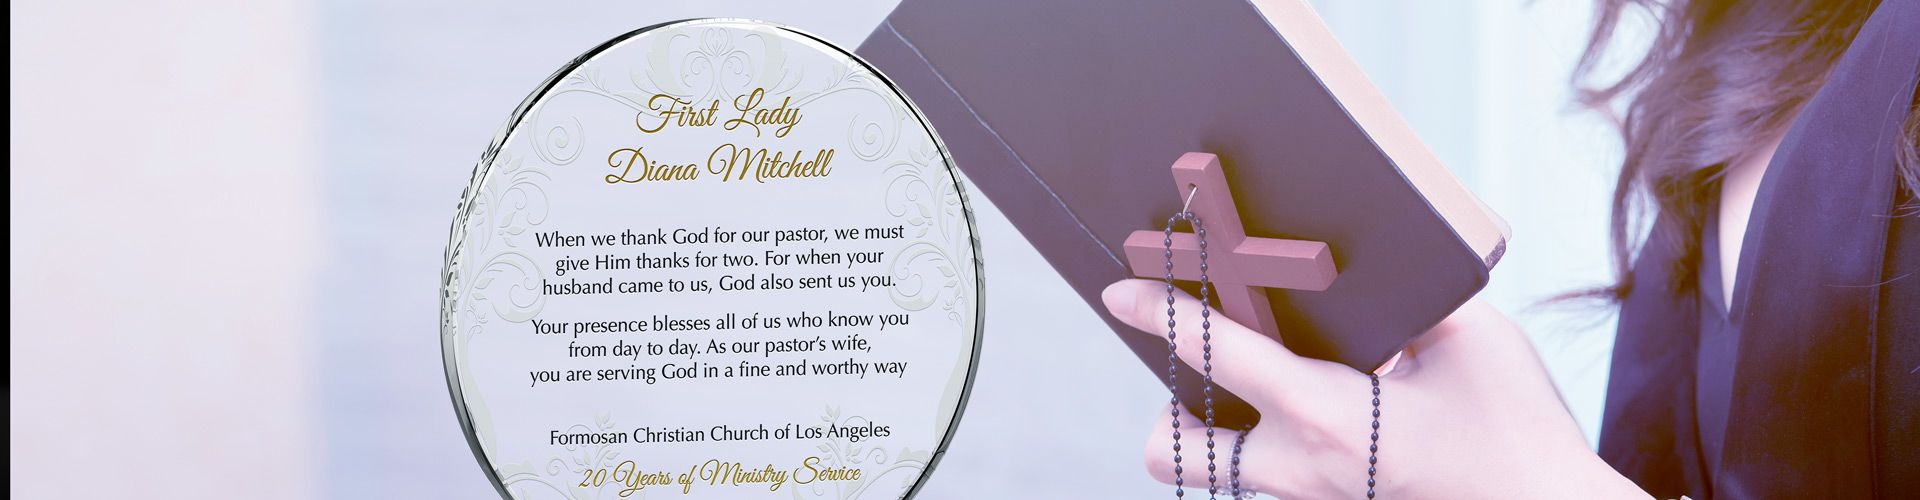 Personalized Gift Plaques for Pastor's Wife - Banner 1